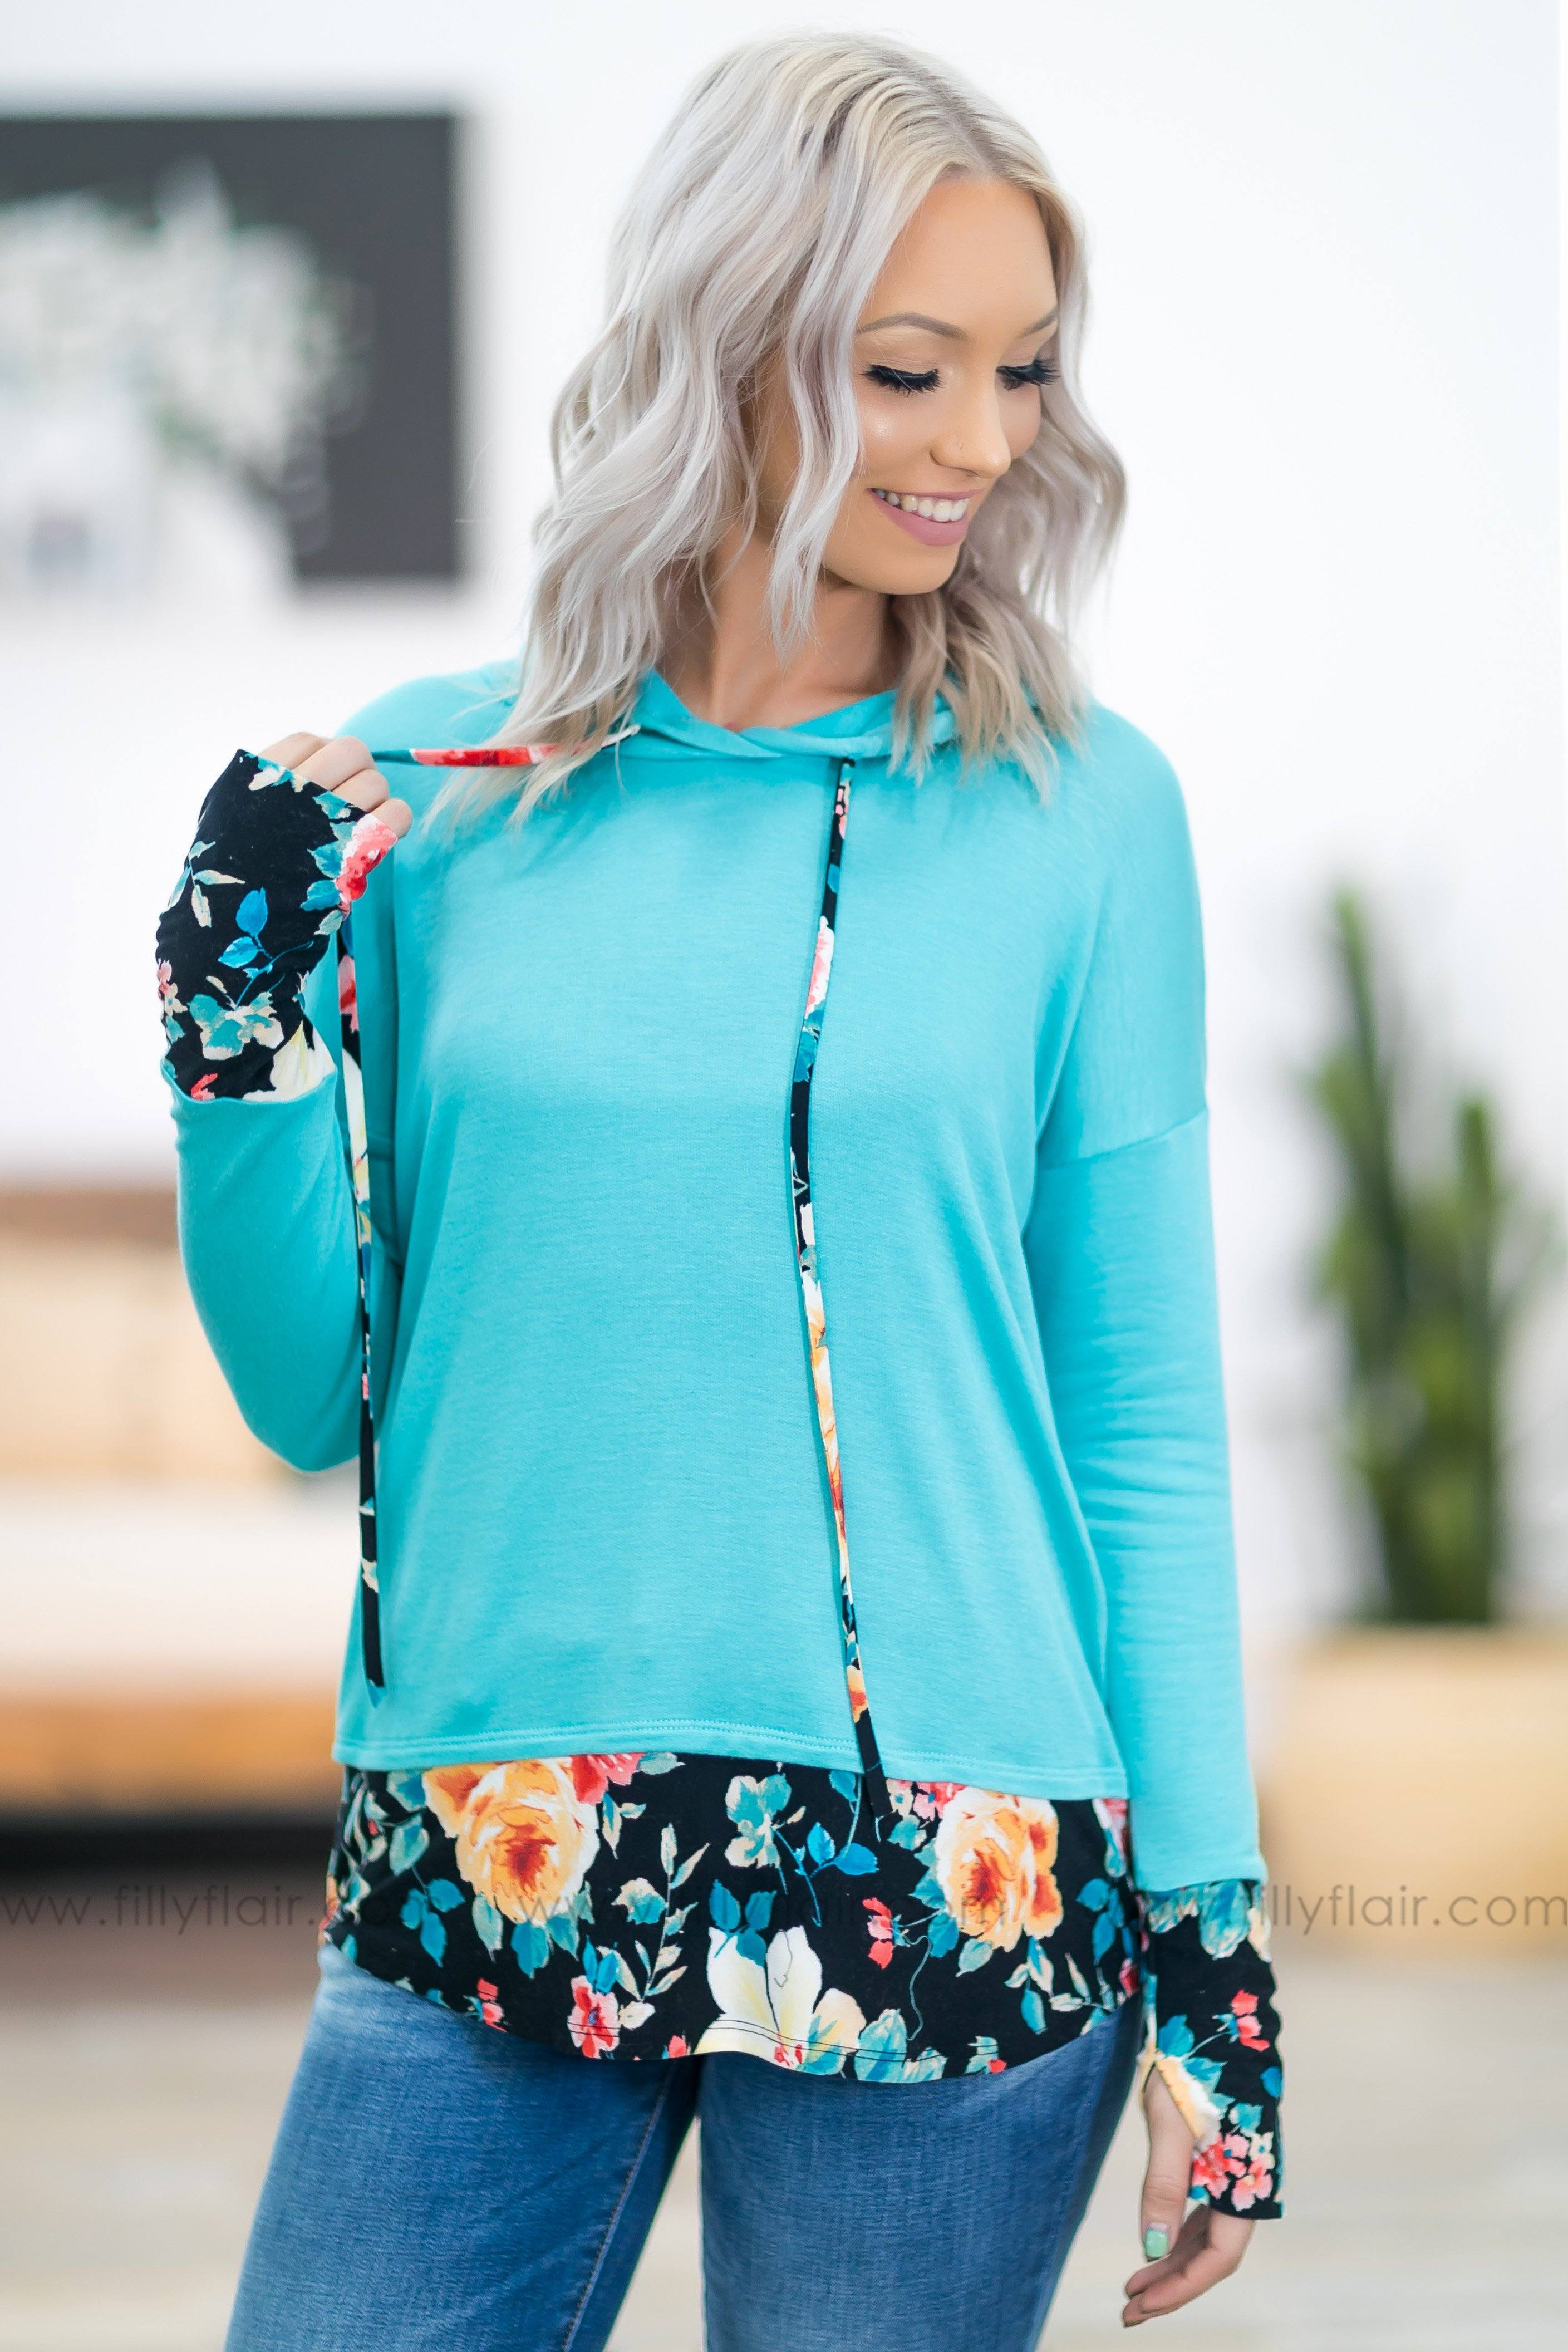 Hold Me Up Floral Hem and Cuff Hoodie in Turquoise - Filly Flair